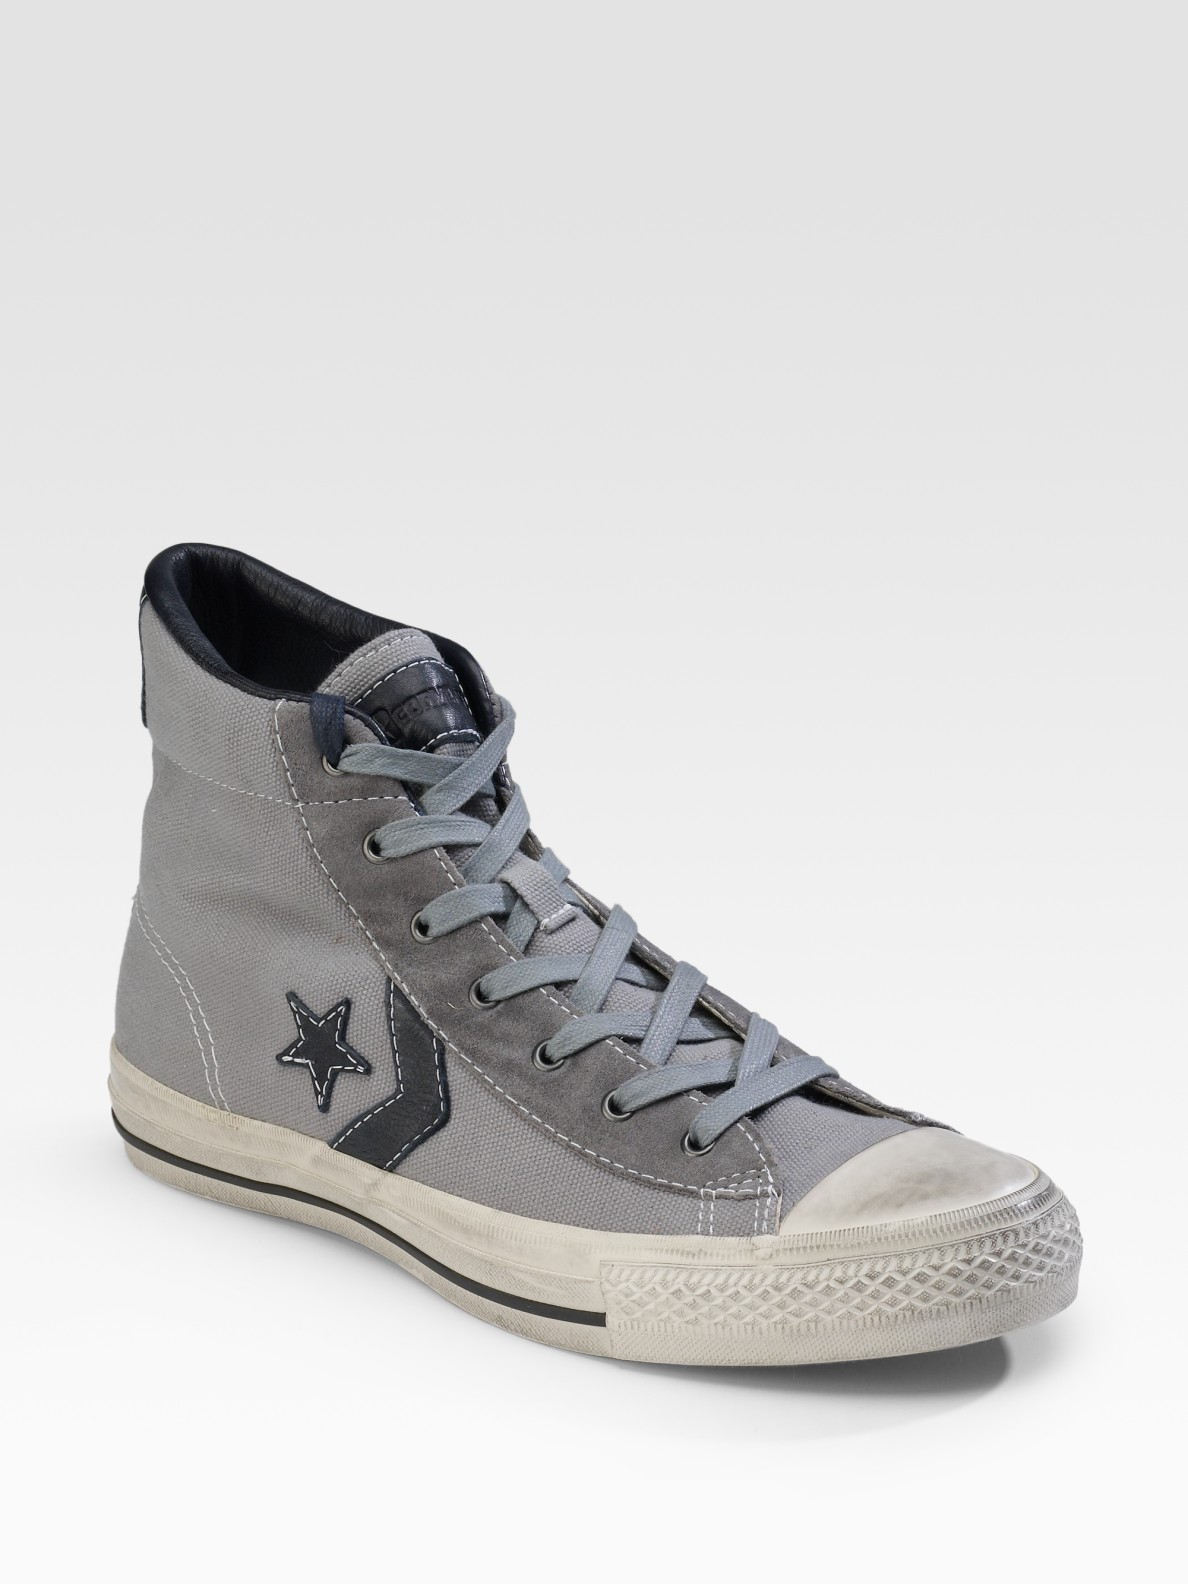 Converse Star Player Canvas High Tops In Gray For Men